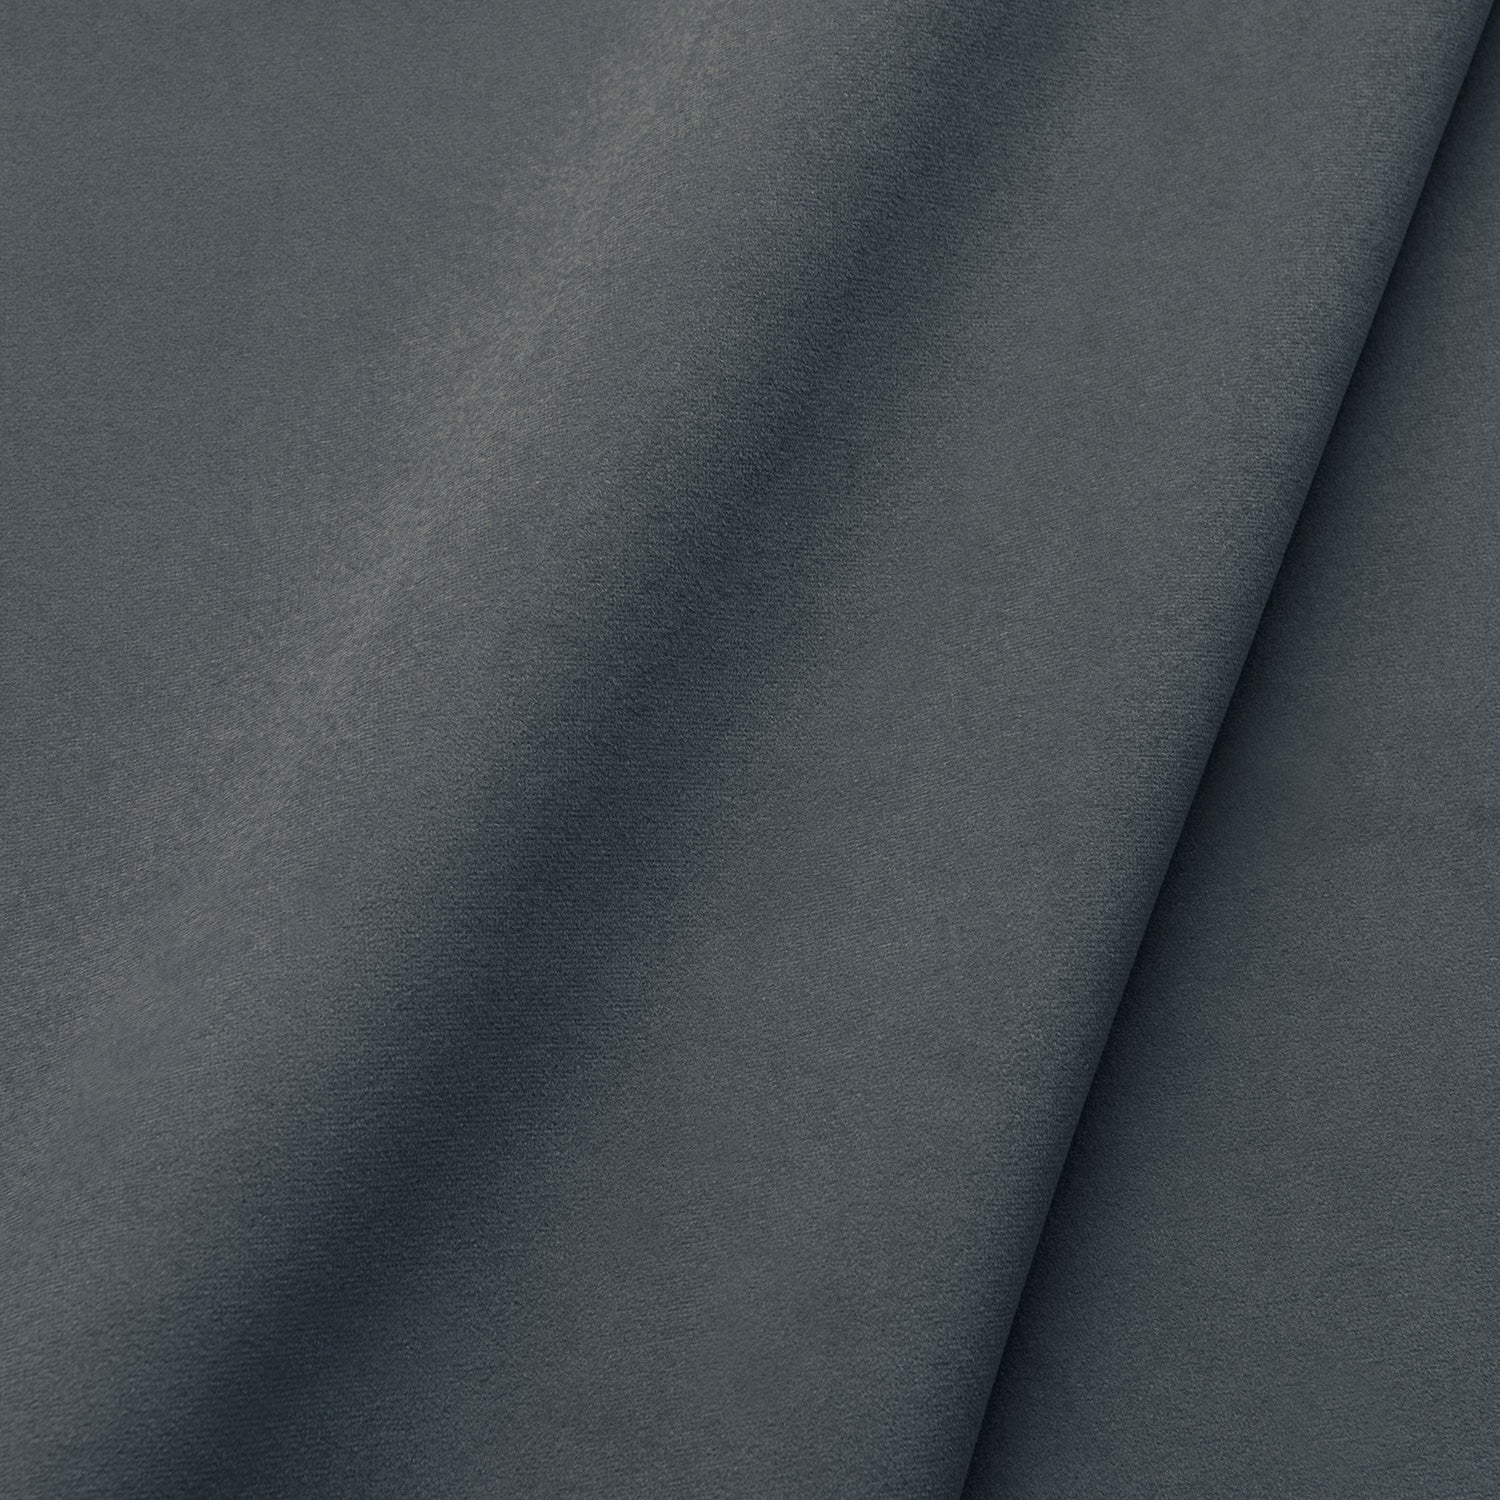 Fabric swatch of a plain stain resistant velvet upholstery fabric in a dark grey colour